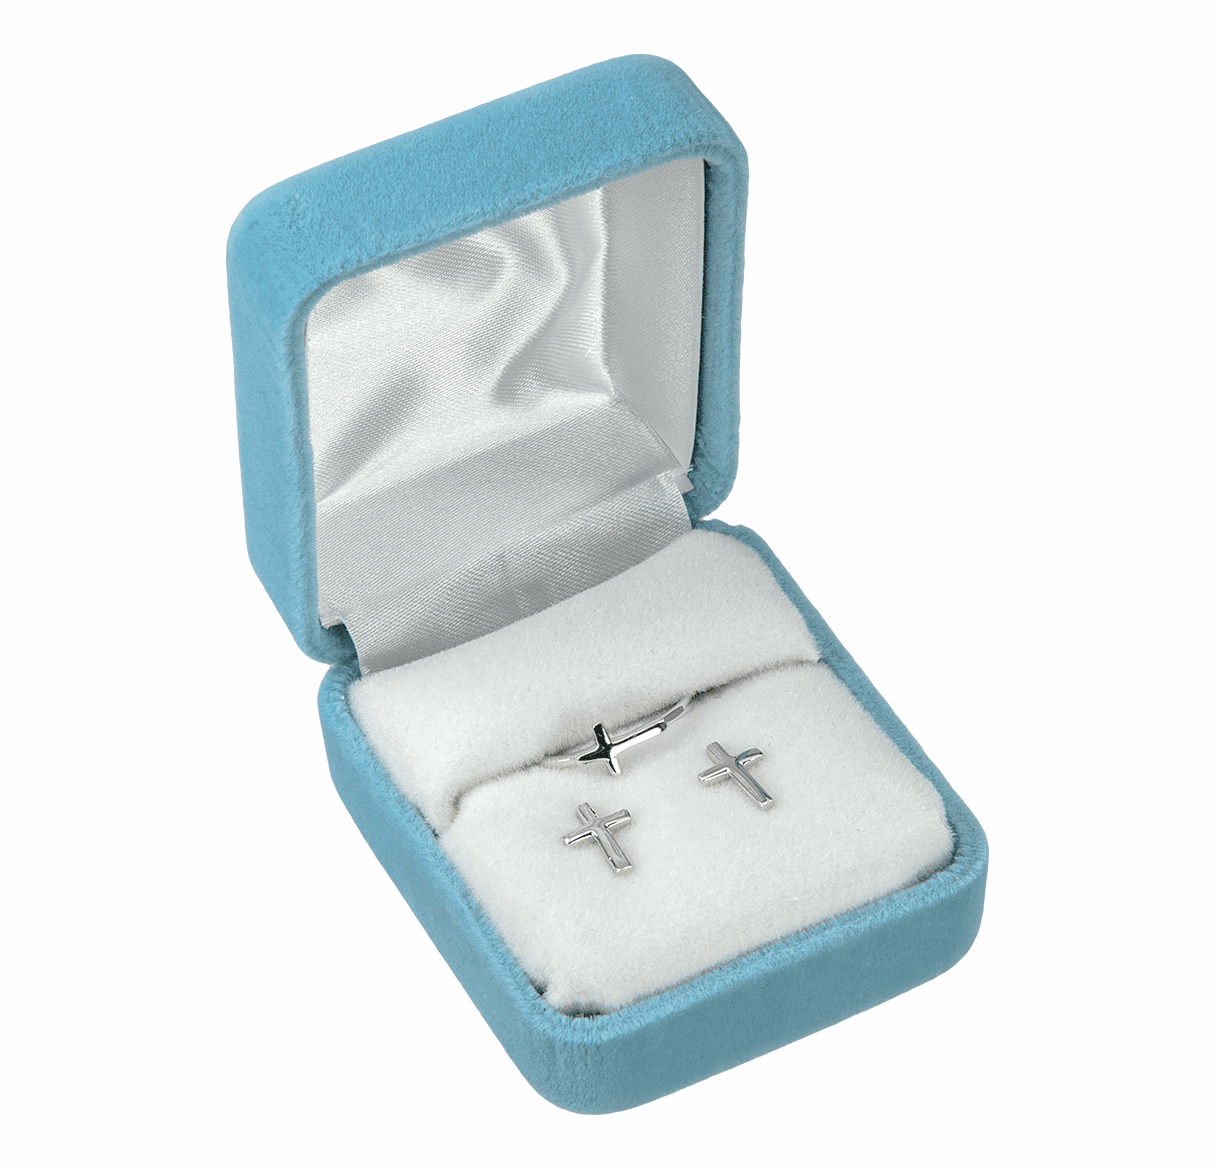 HMH Religious Sterling Silver Cross Earrings and Ring Gift Set